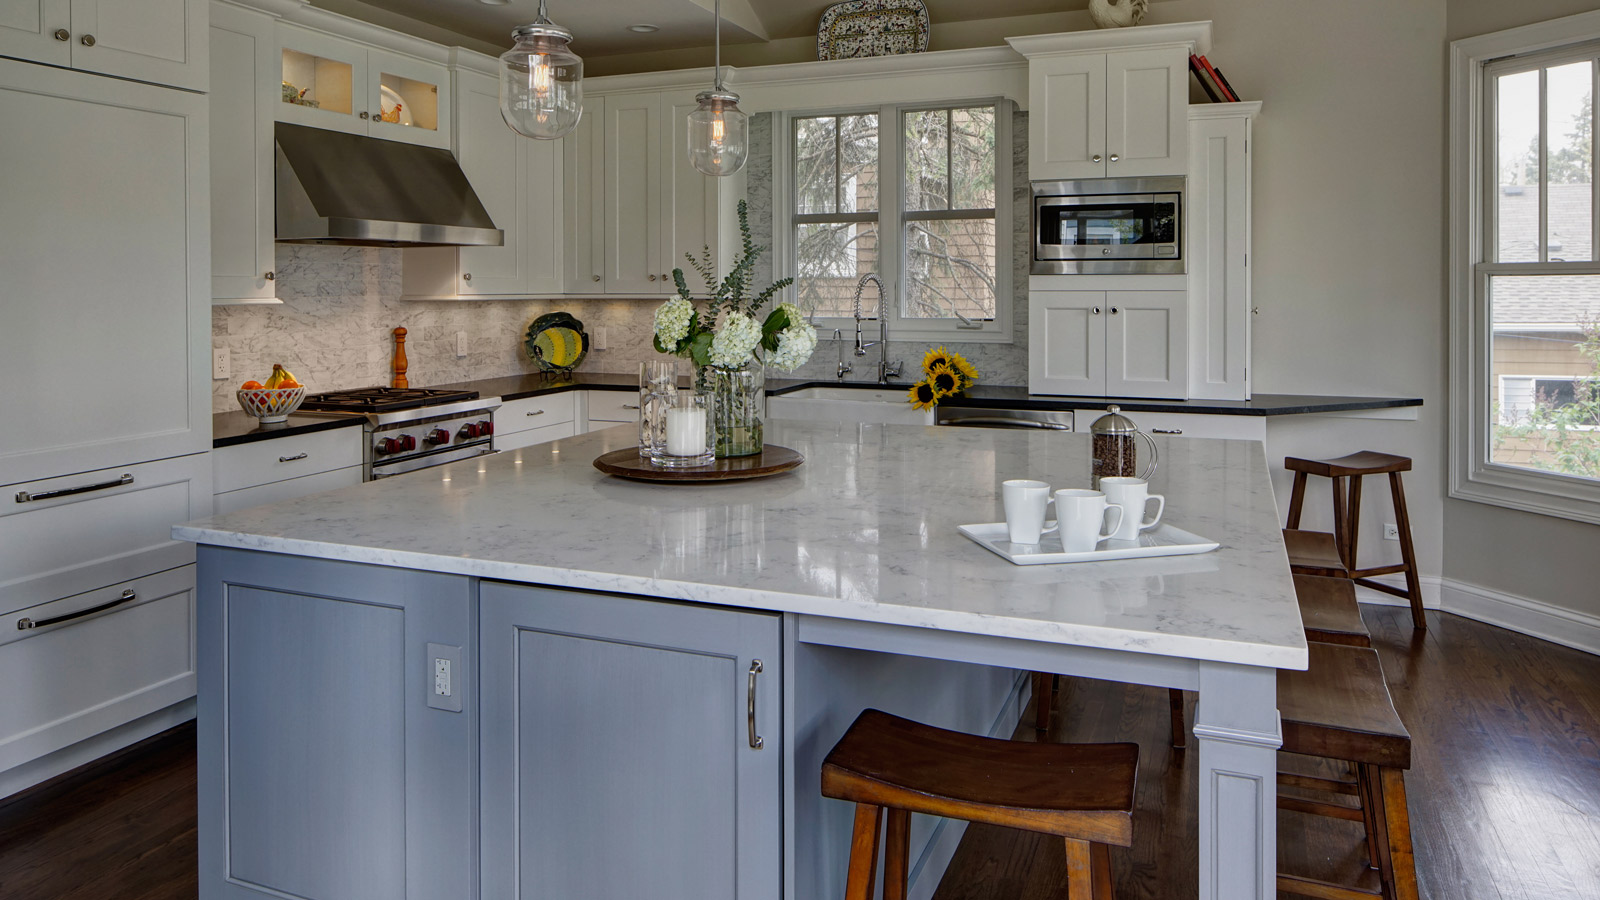 1600 x 900 Classically Inspired Traditional Kitchen Design Lombard drury design